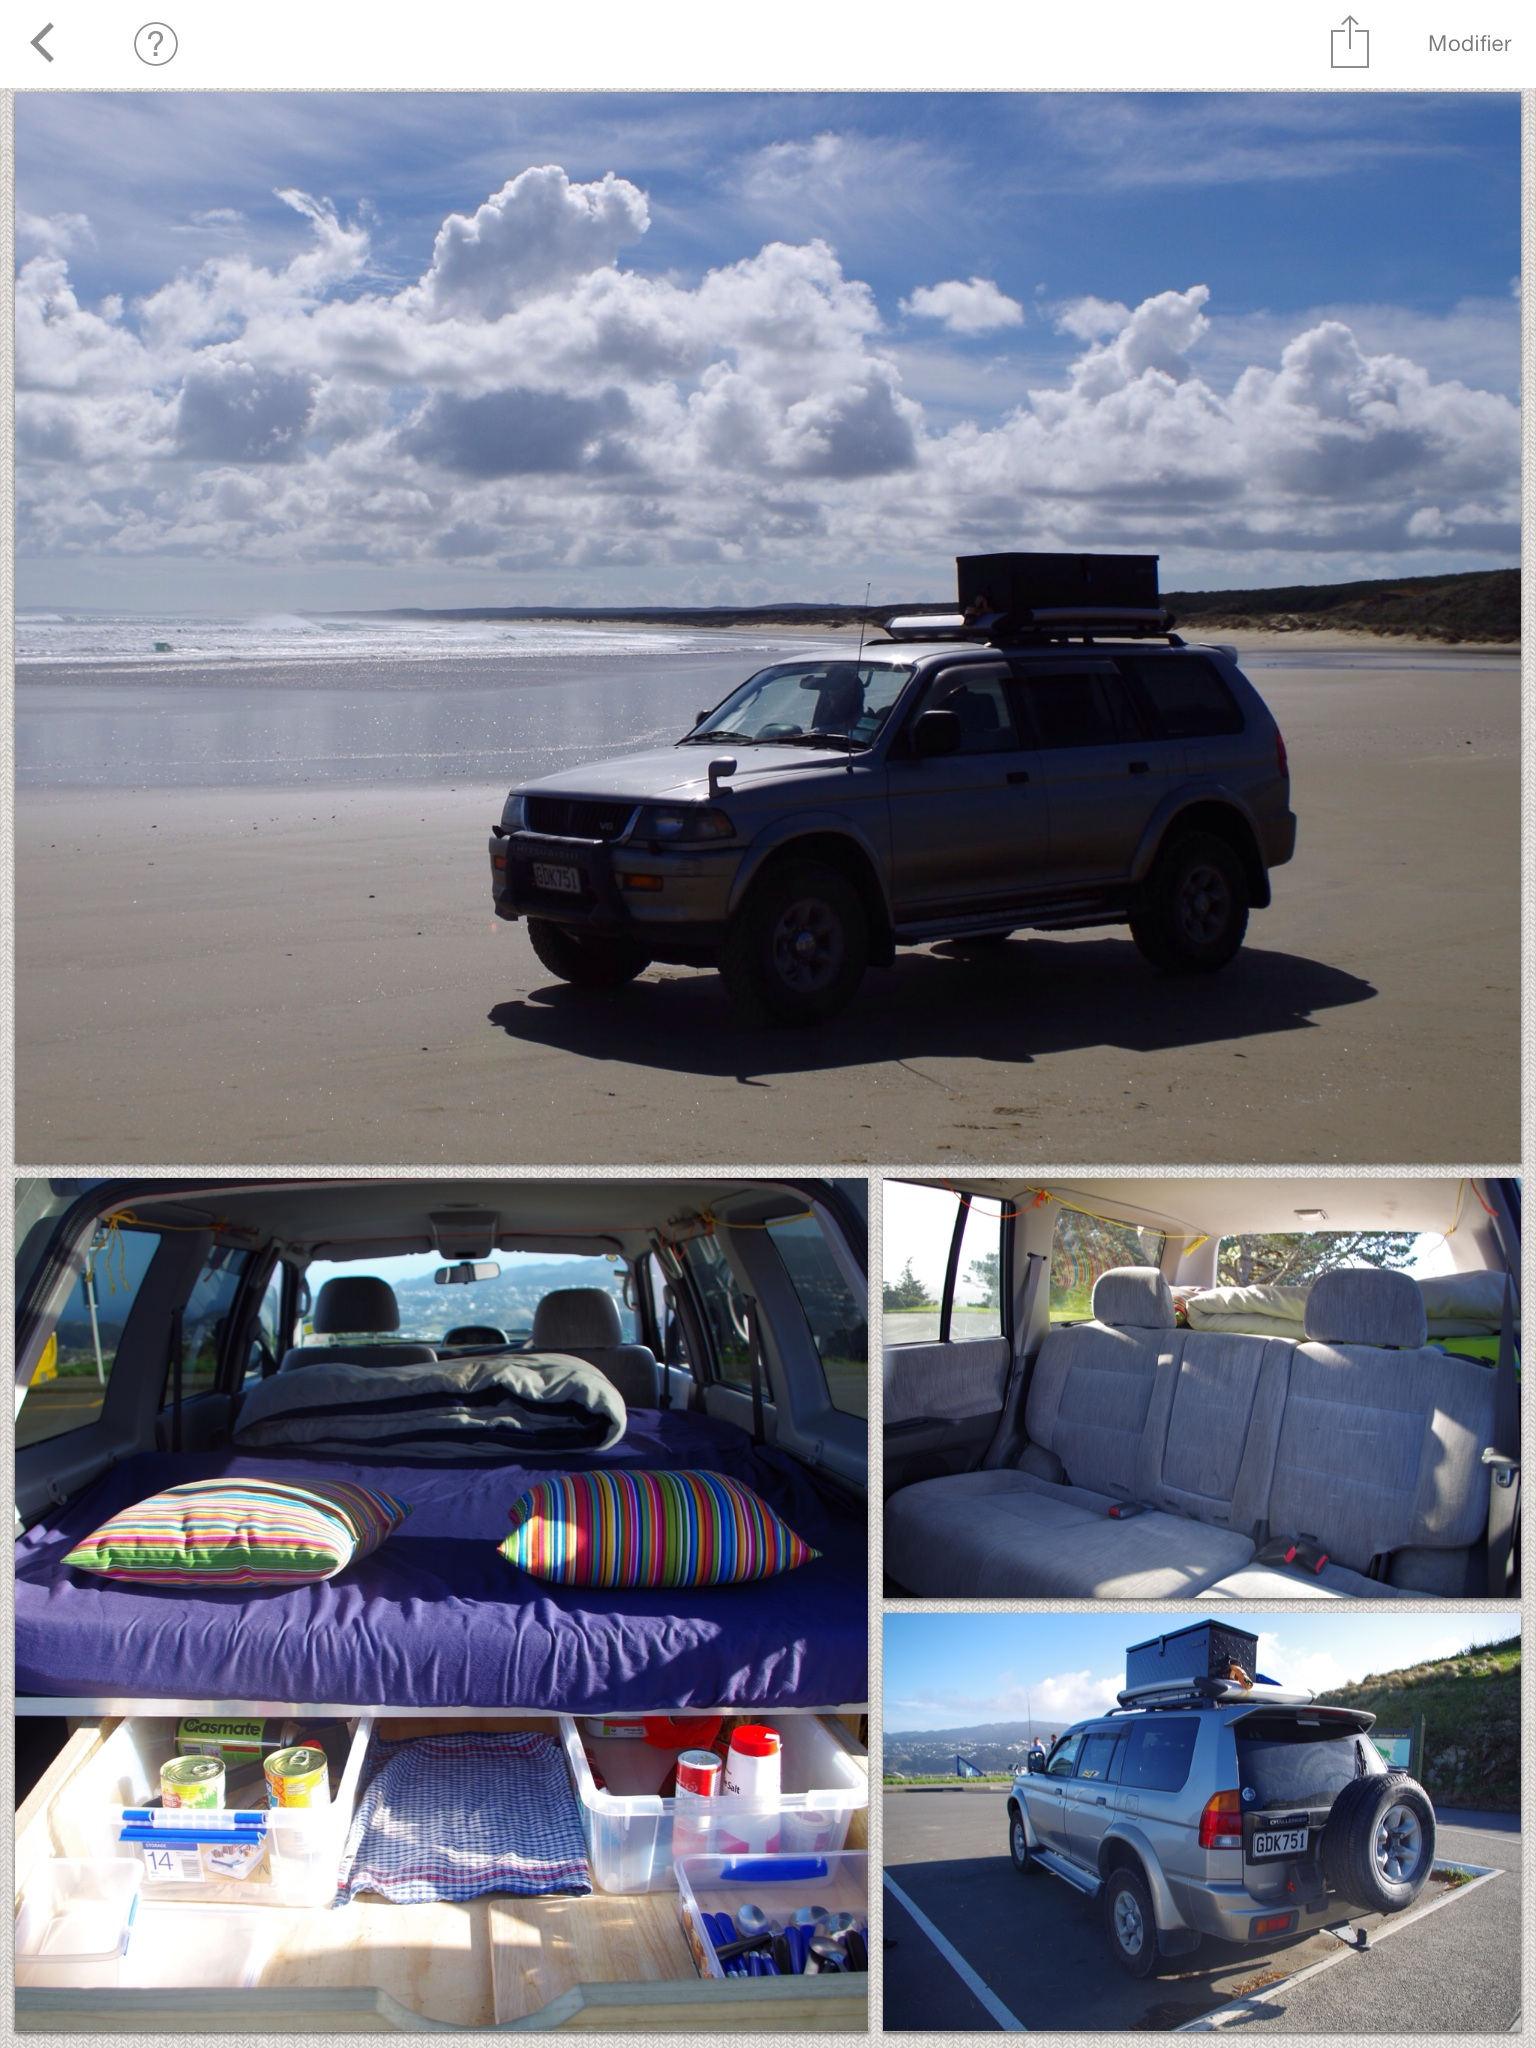 mitsubishi challenger 5 si ges convertible en lit double frogs in nz. Black Bedroom Furniture Sets. Home Design Ideas